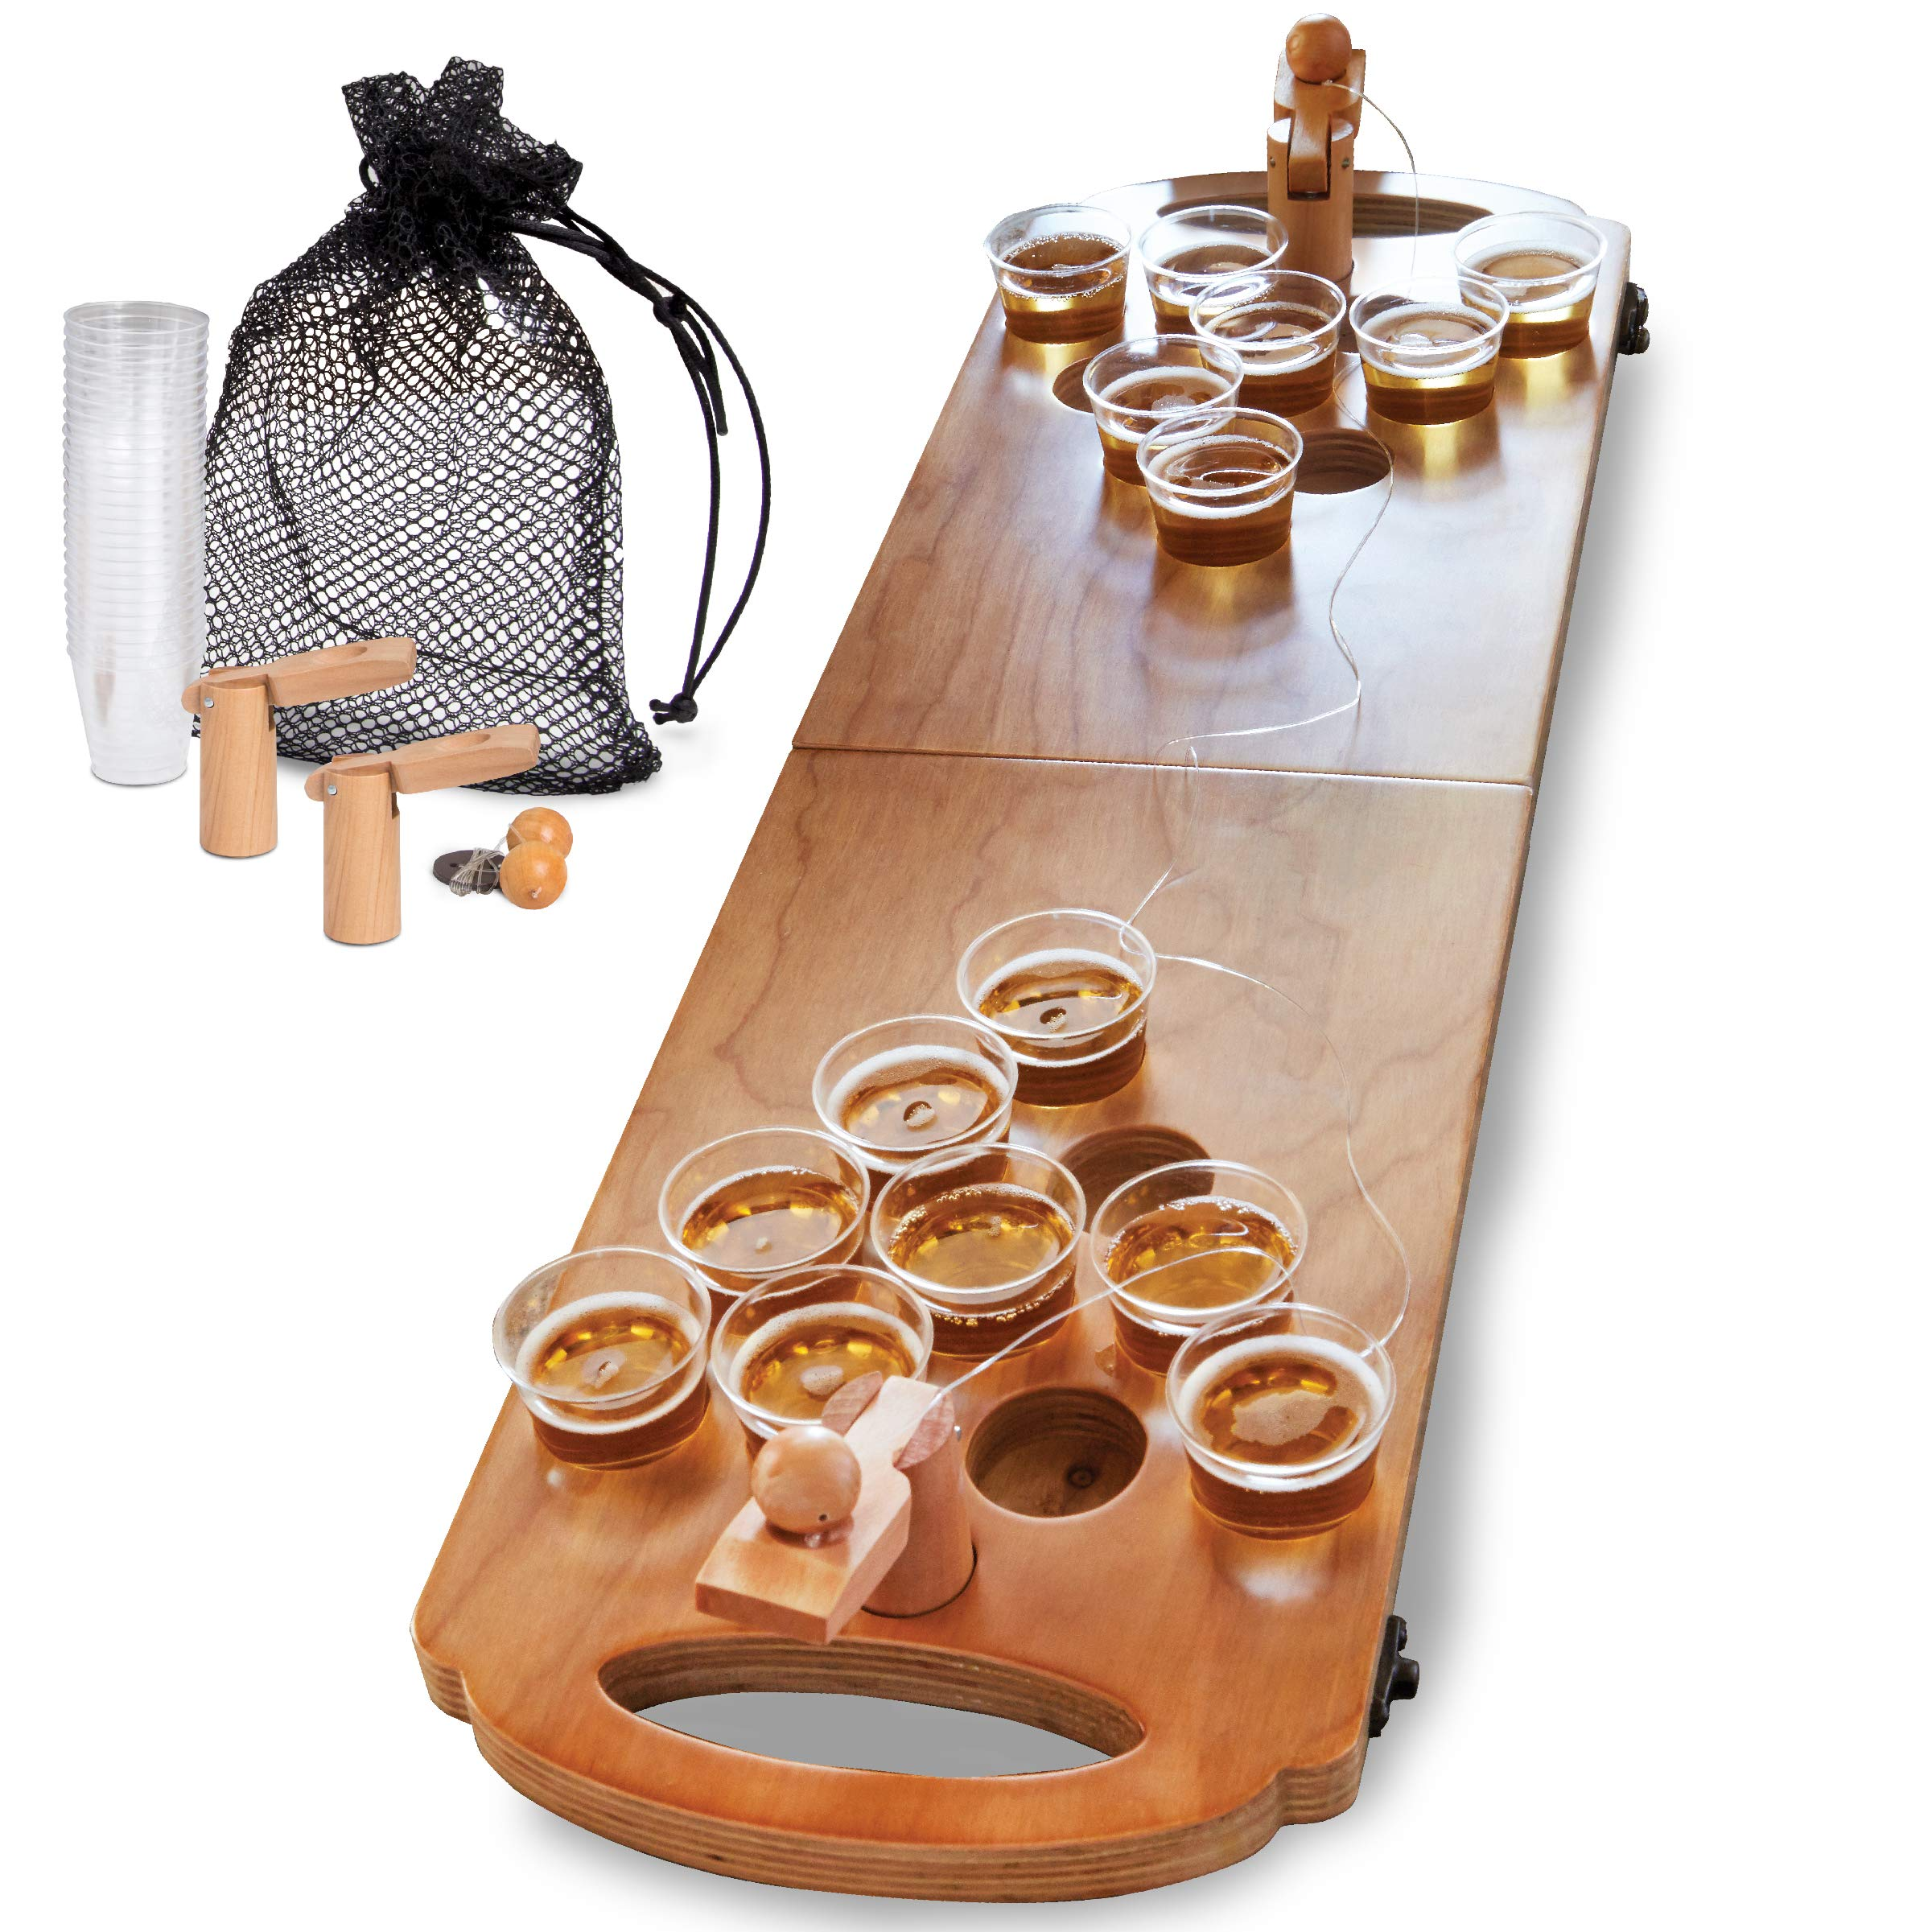 SHARPER IMAGE Mini Beer Pong Tabletop Set with Table, Cups, Balls & Carrying Case by Sharper Image